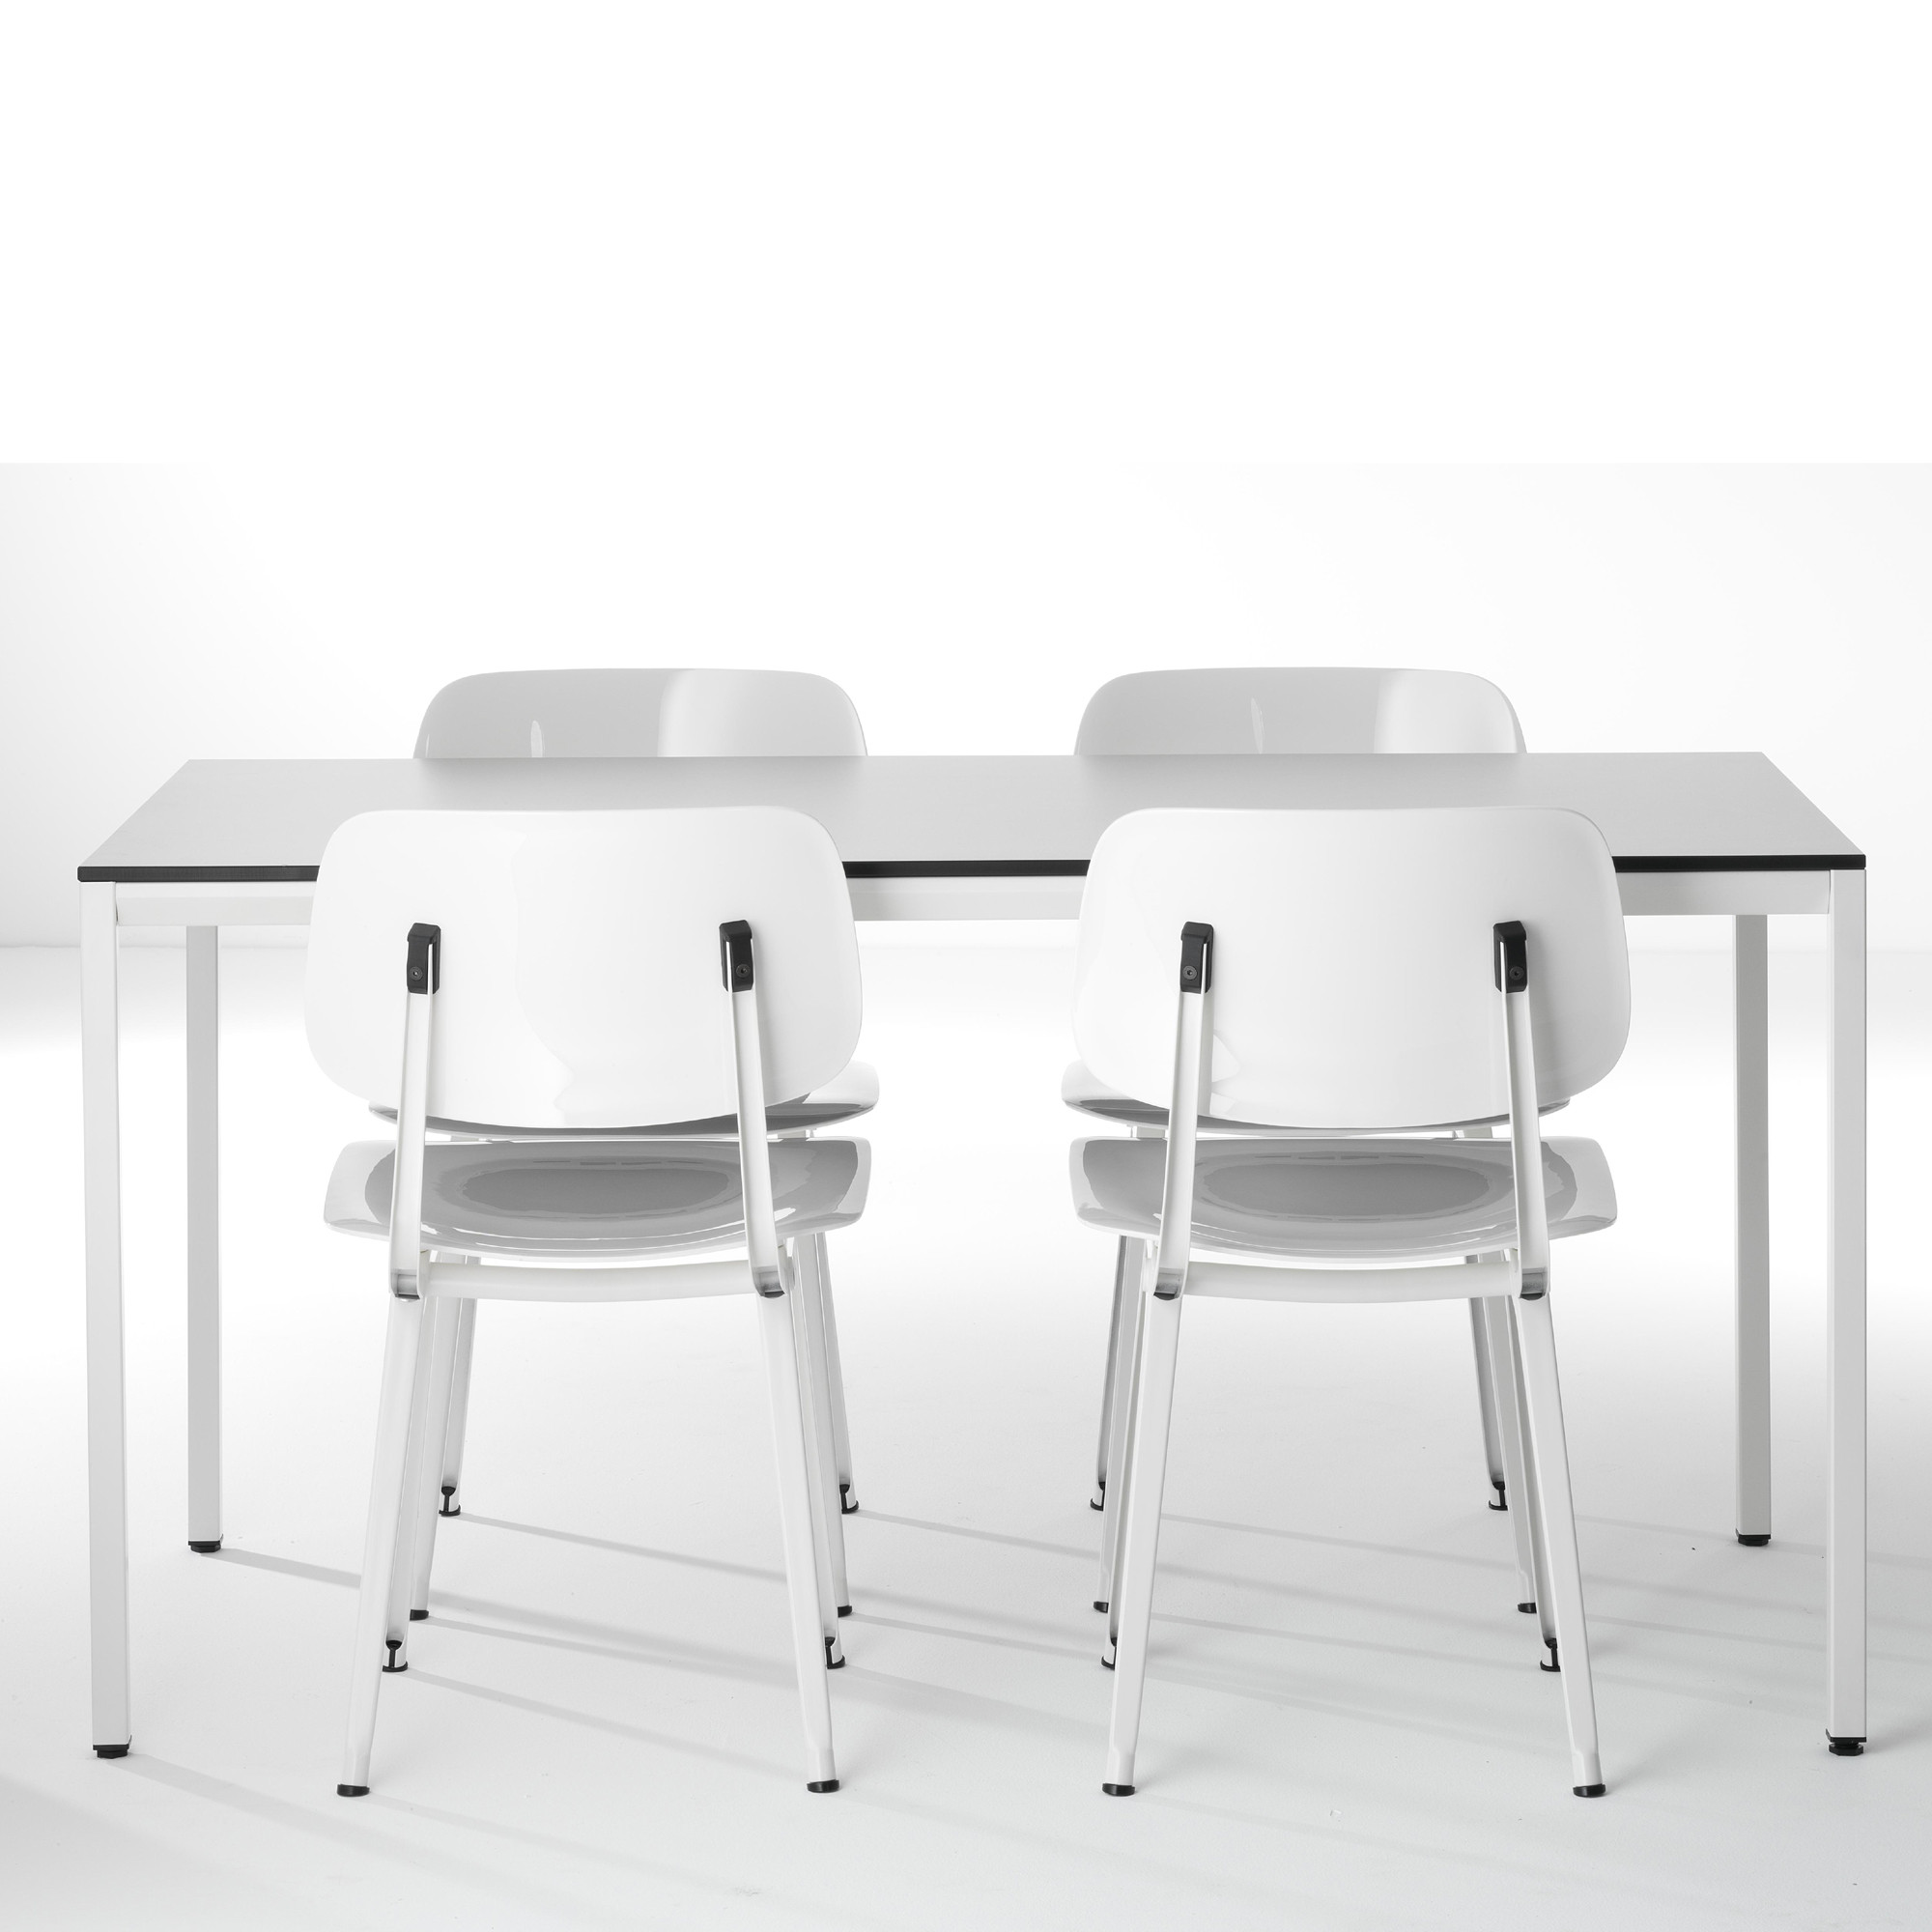 Revolt Chairs in White